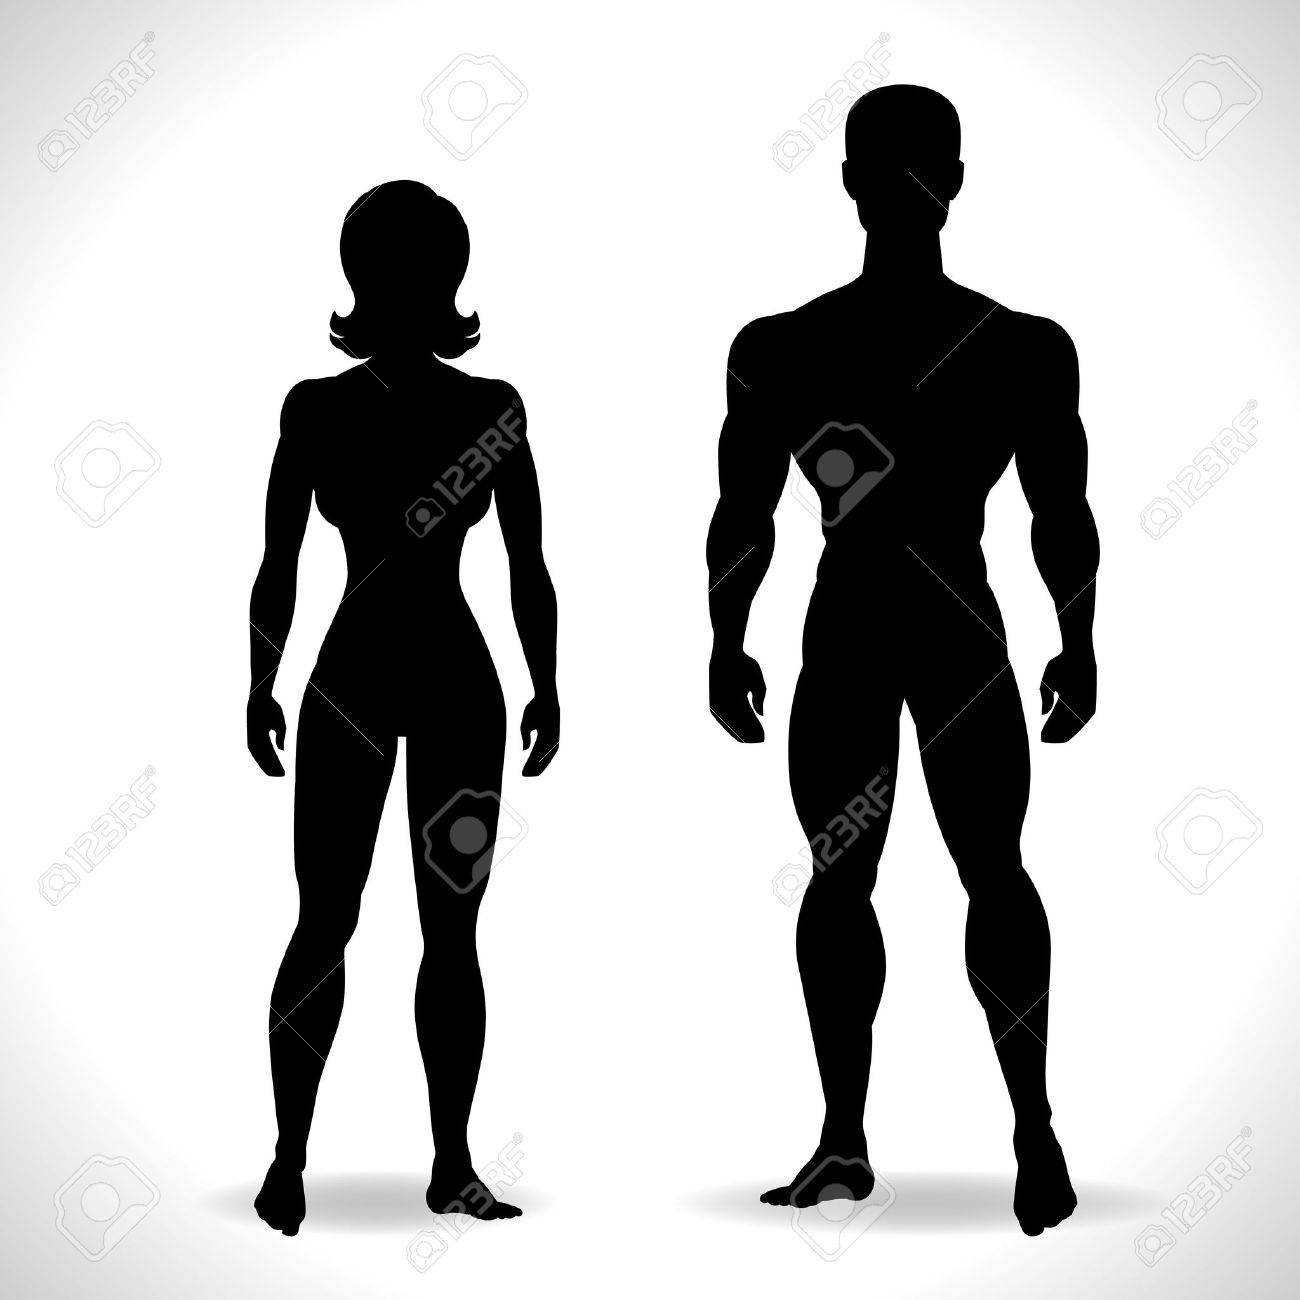 Silhouettes of man and woman in black color. - 24991471